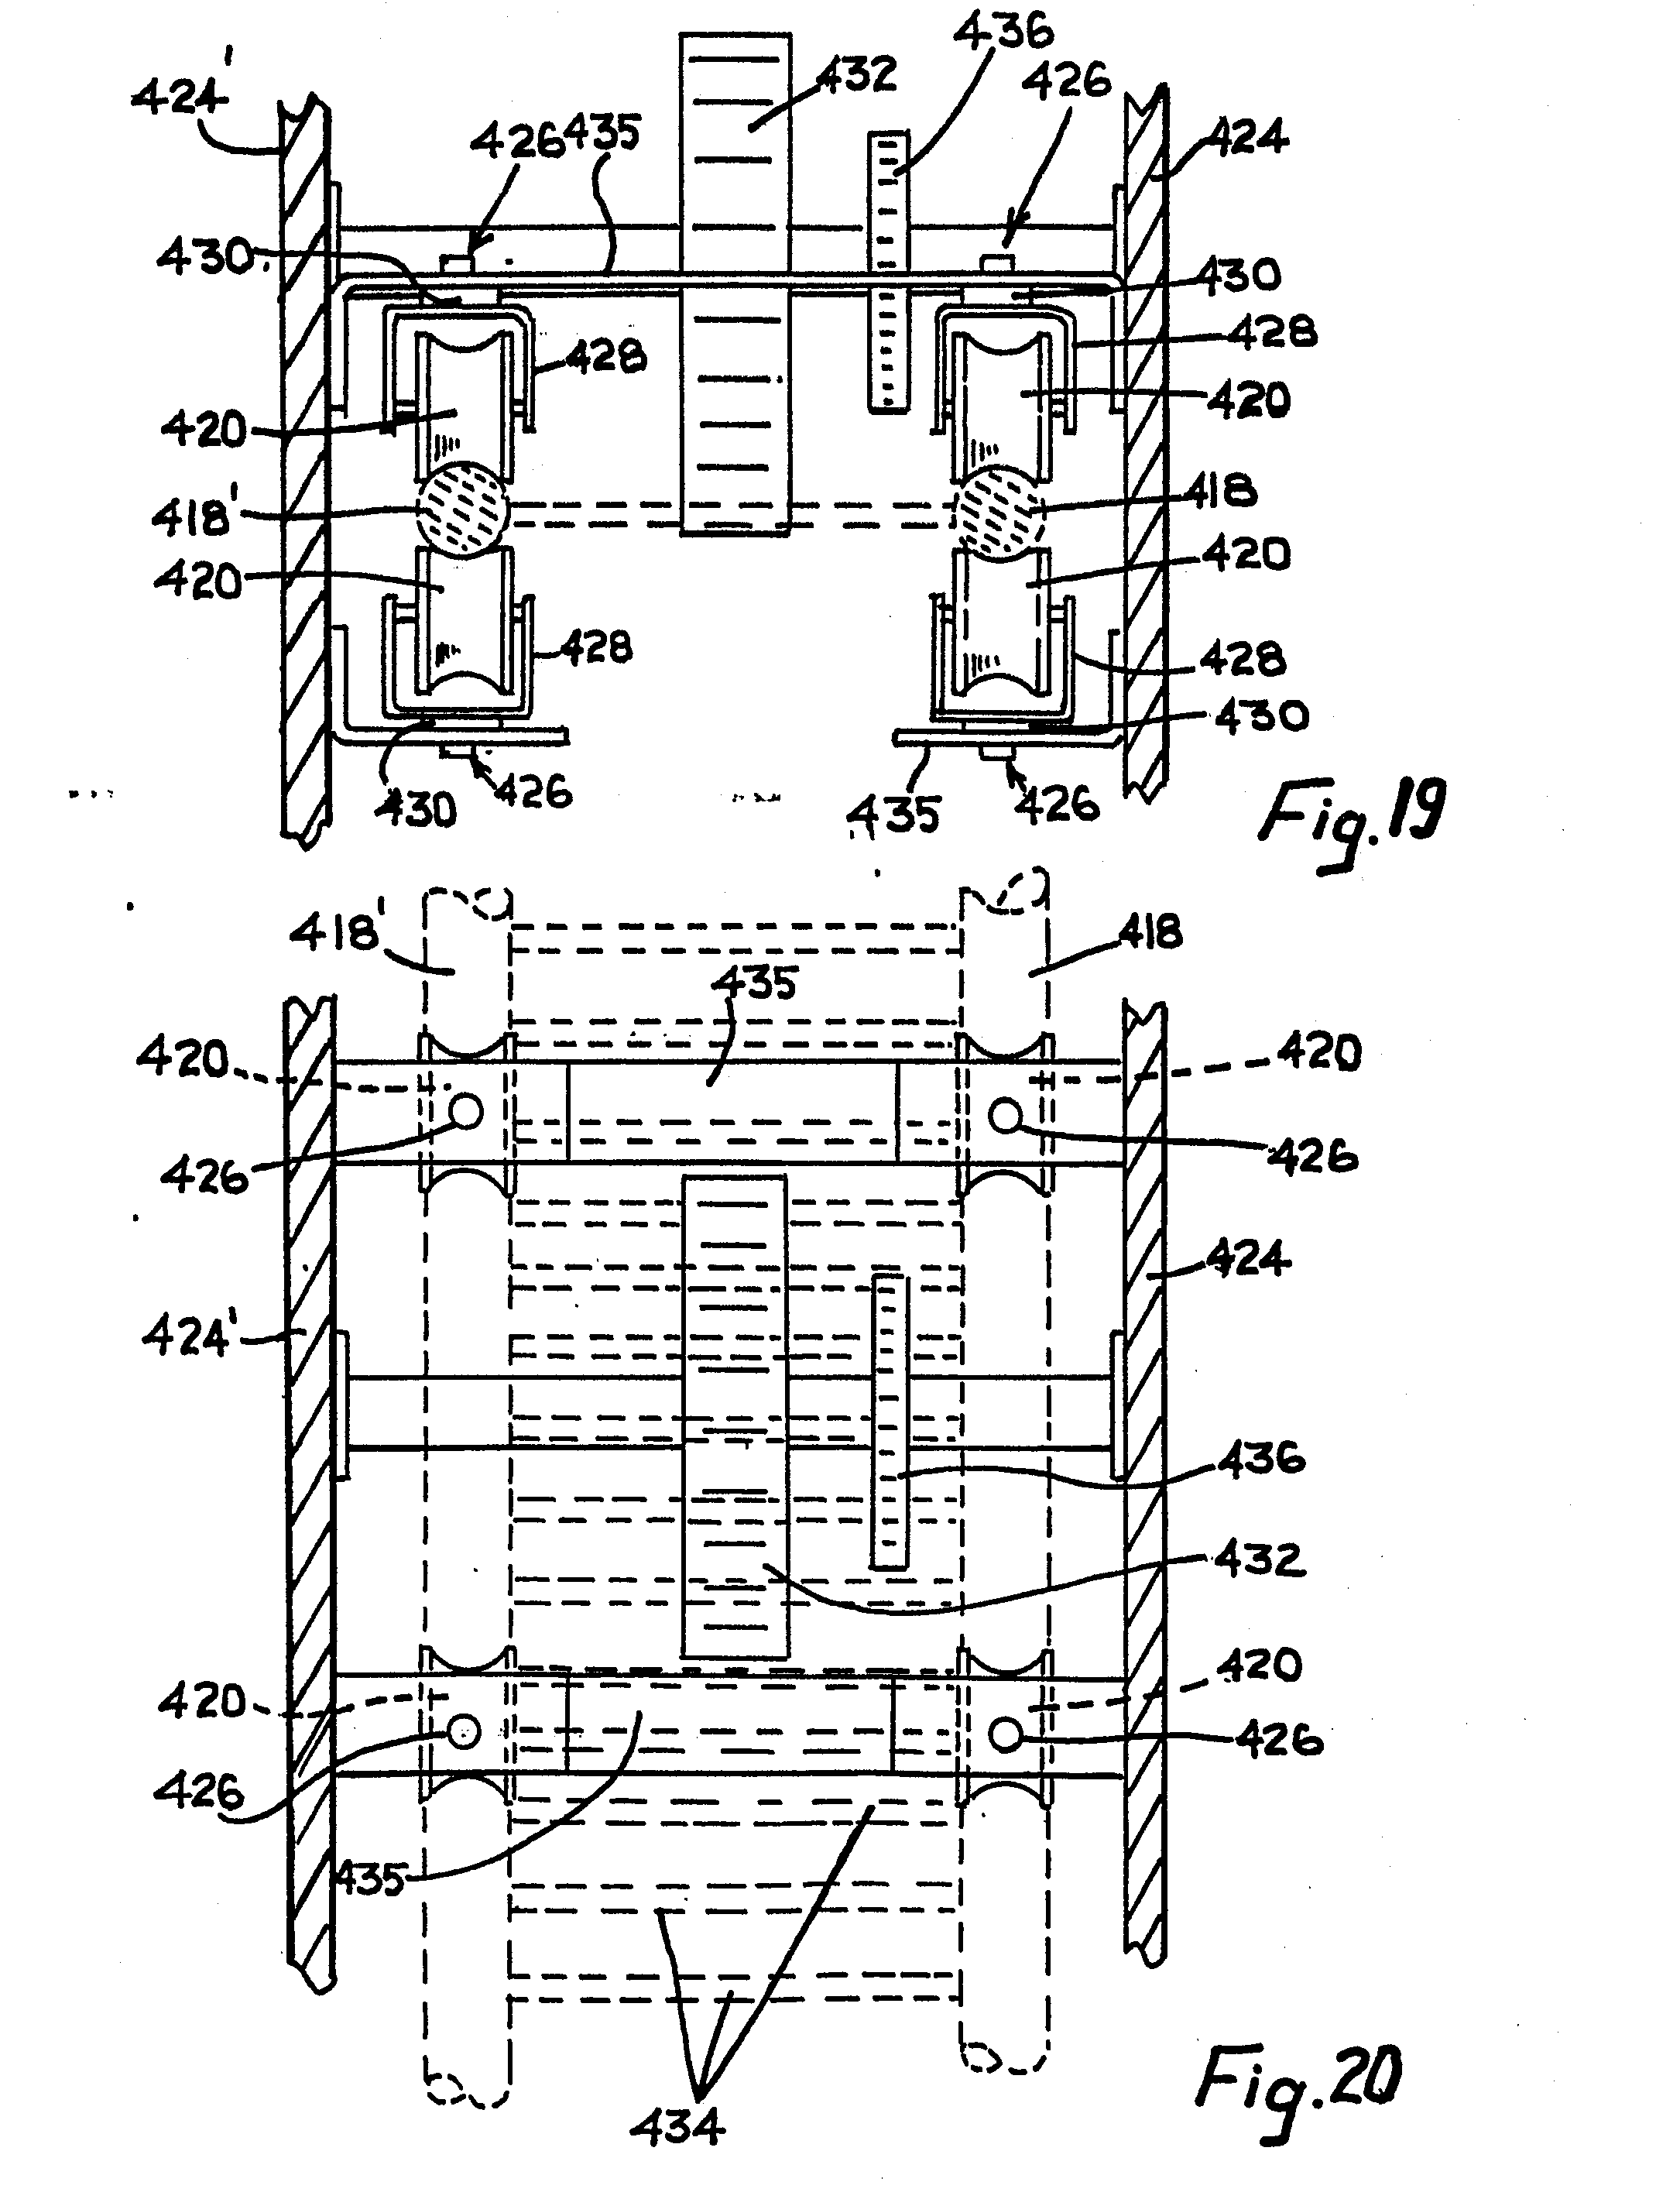 imgf0017 patent ep0137577a1 a stair lift google patents stannah stair lift wiring diagram at aneh.co